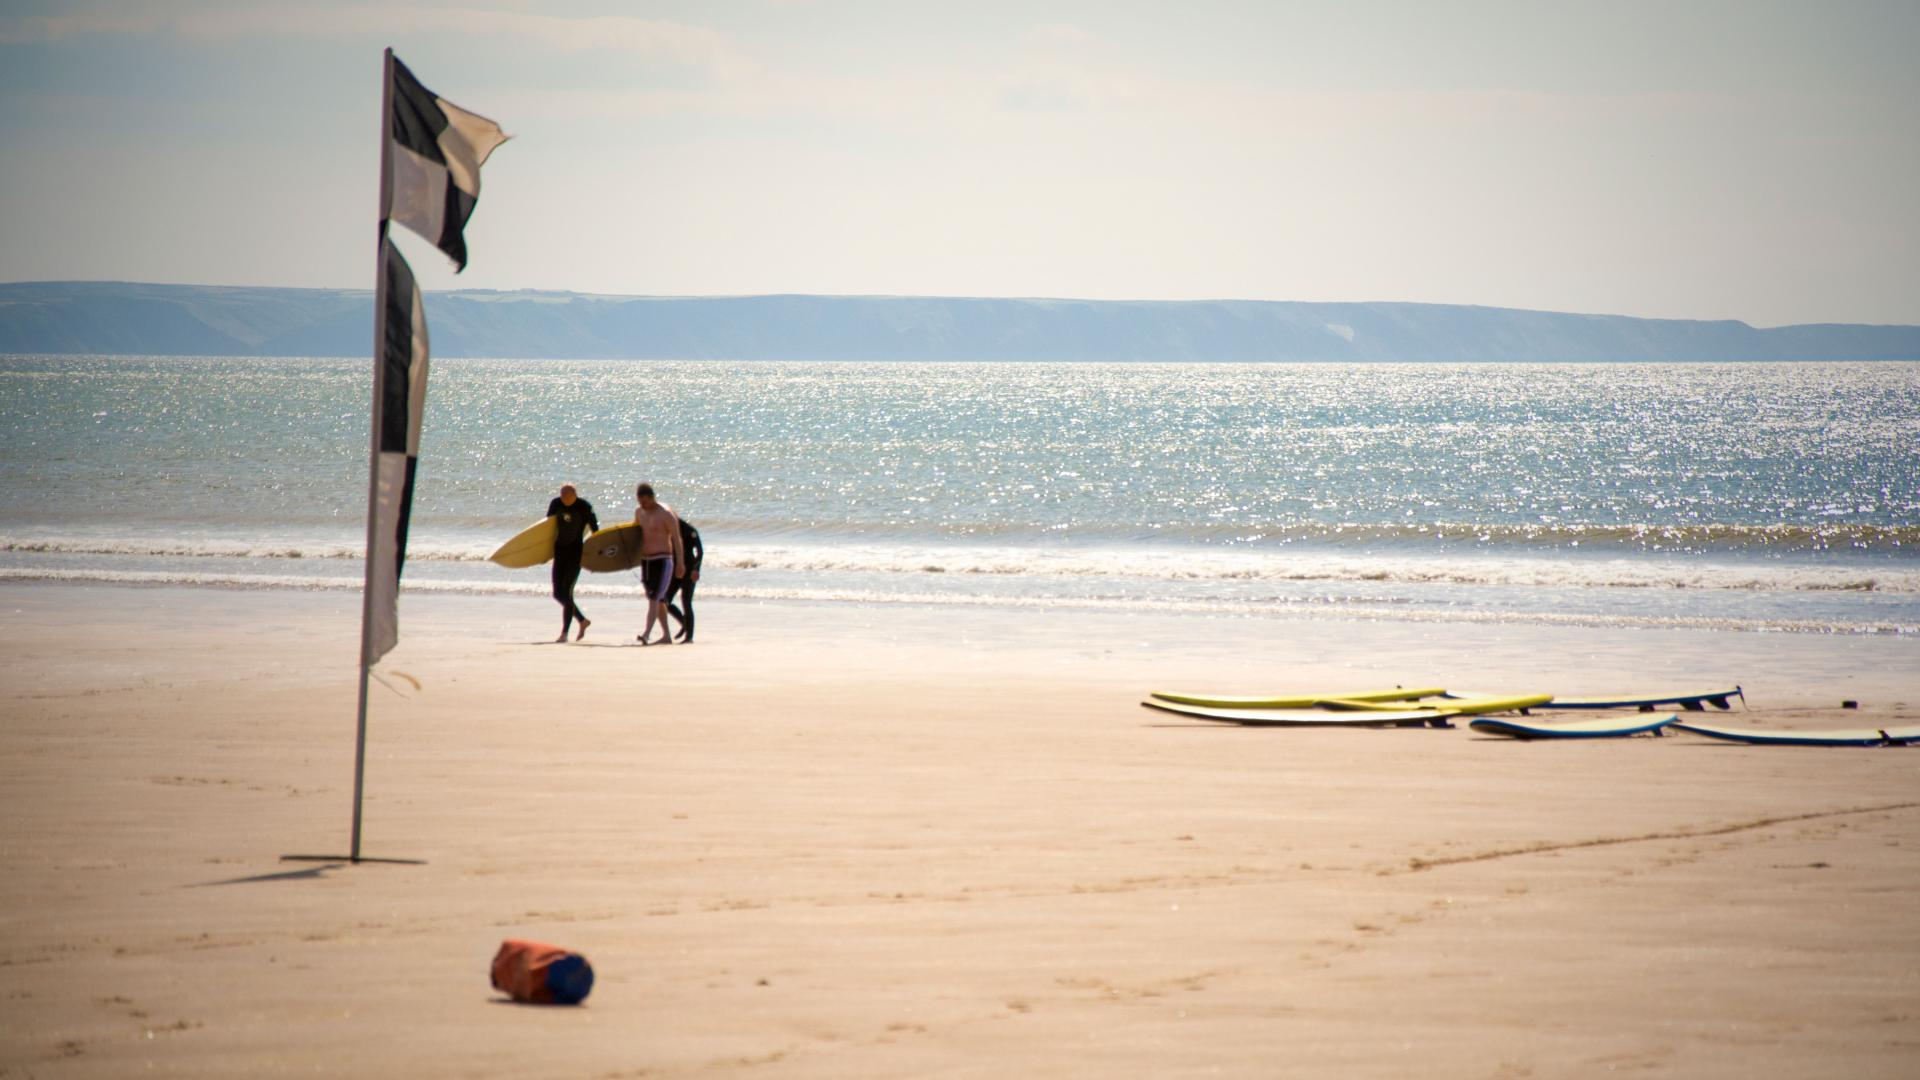 Surfing at Croyde Beach, Devon